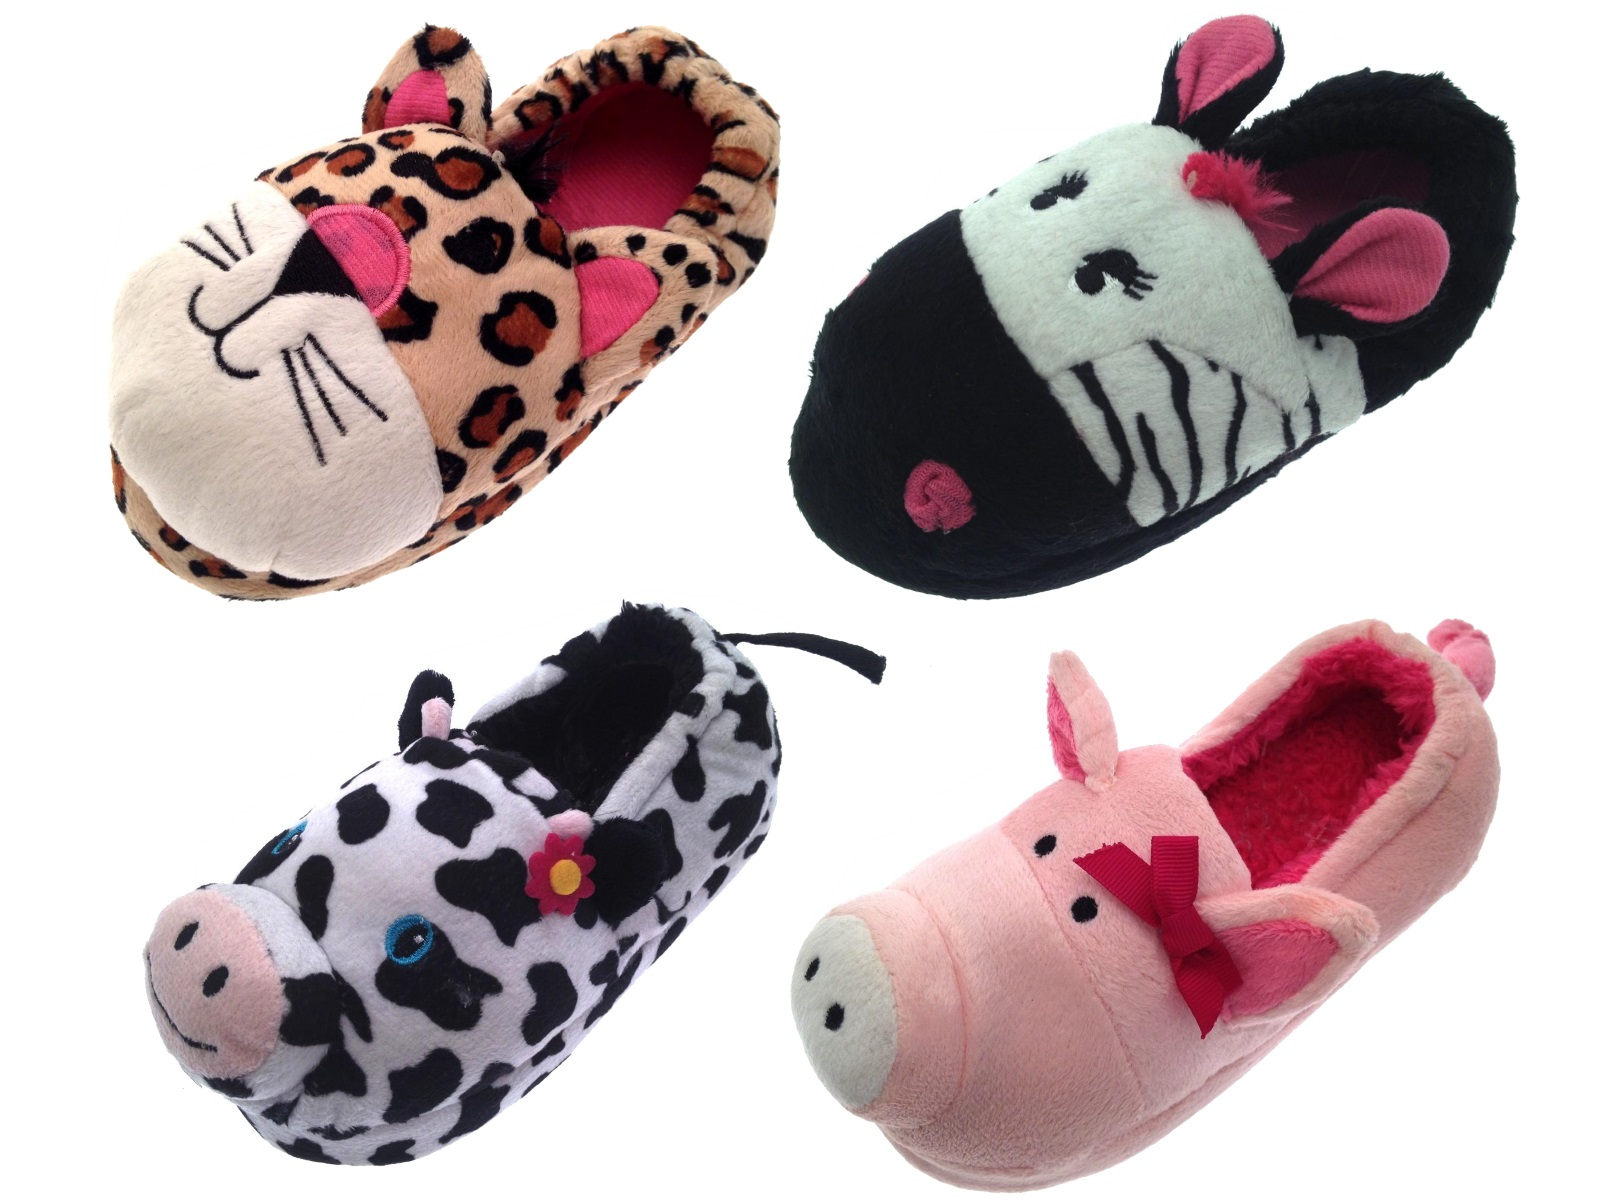 369cb7ab1c2316 Girls Boots Kids Bootie Slippers Girls Unicorn Gifts Winter Warm Colorful Animal  Shoes